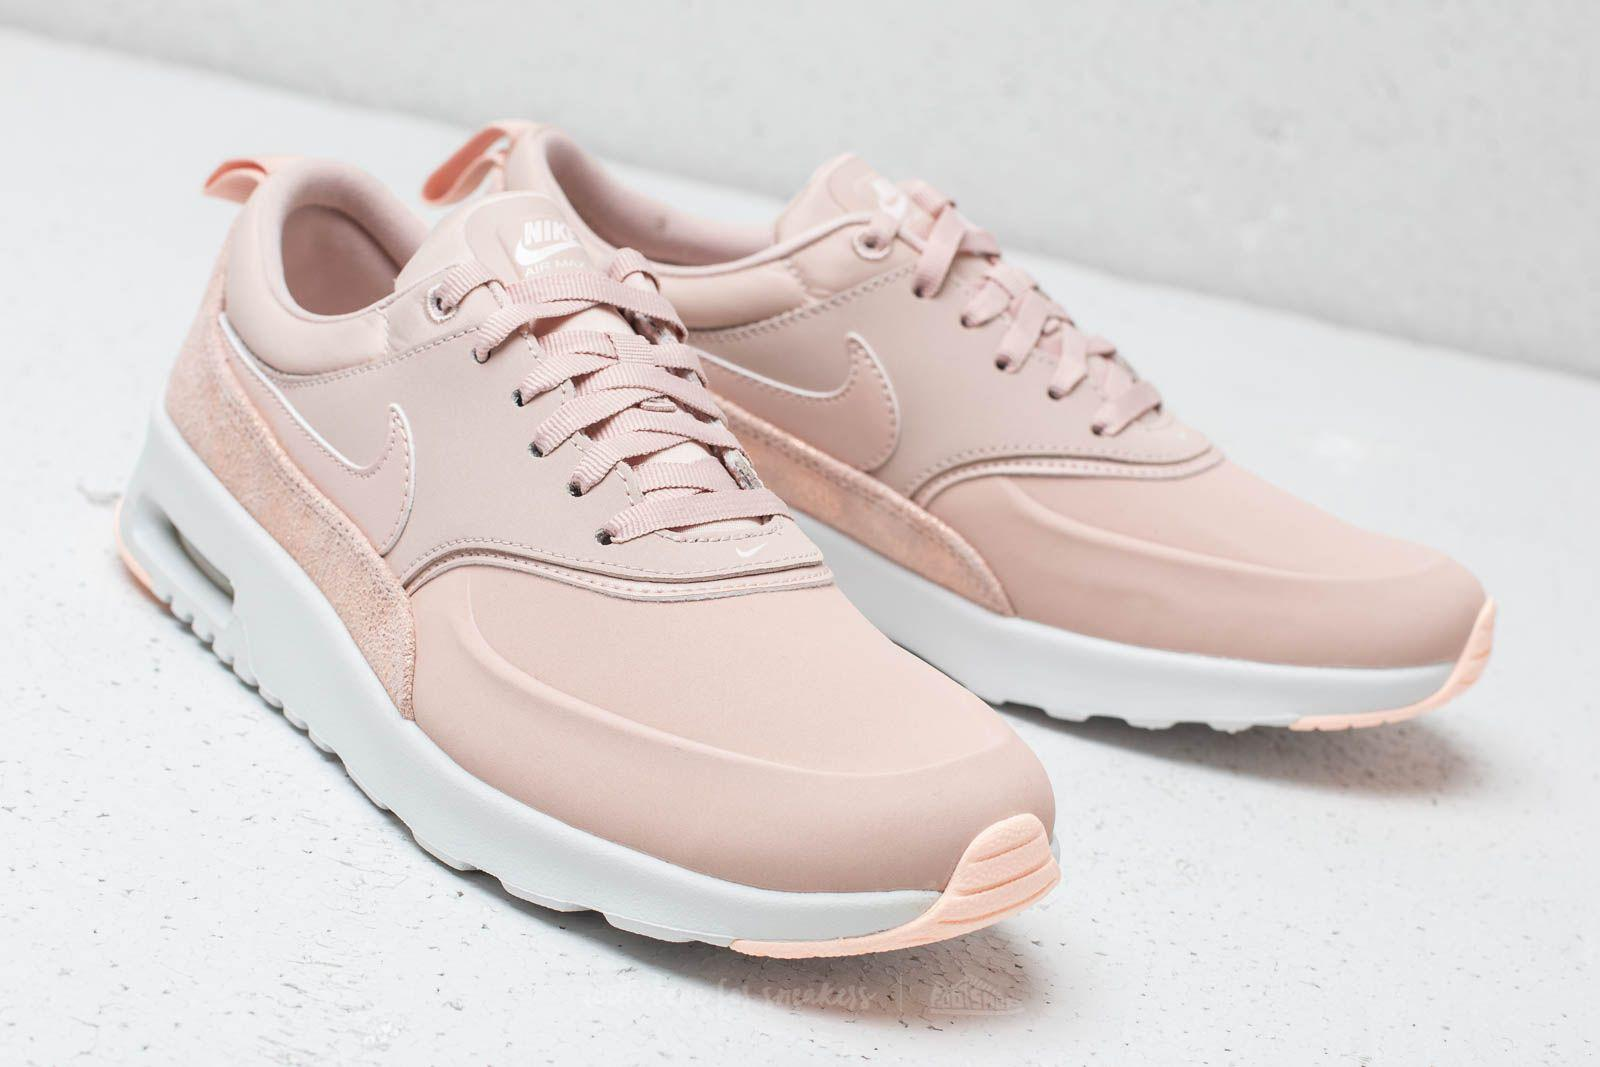 Nike Wmns Air Max Thea Premium Particle Beige/ Particle Beige in ...